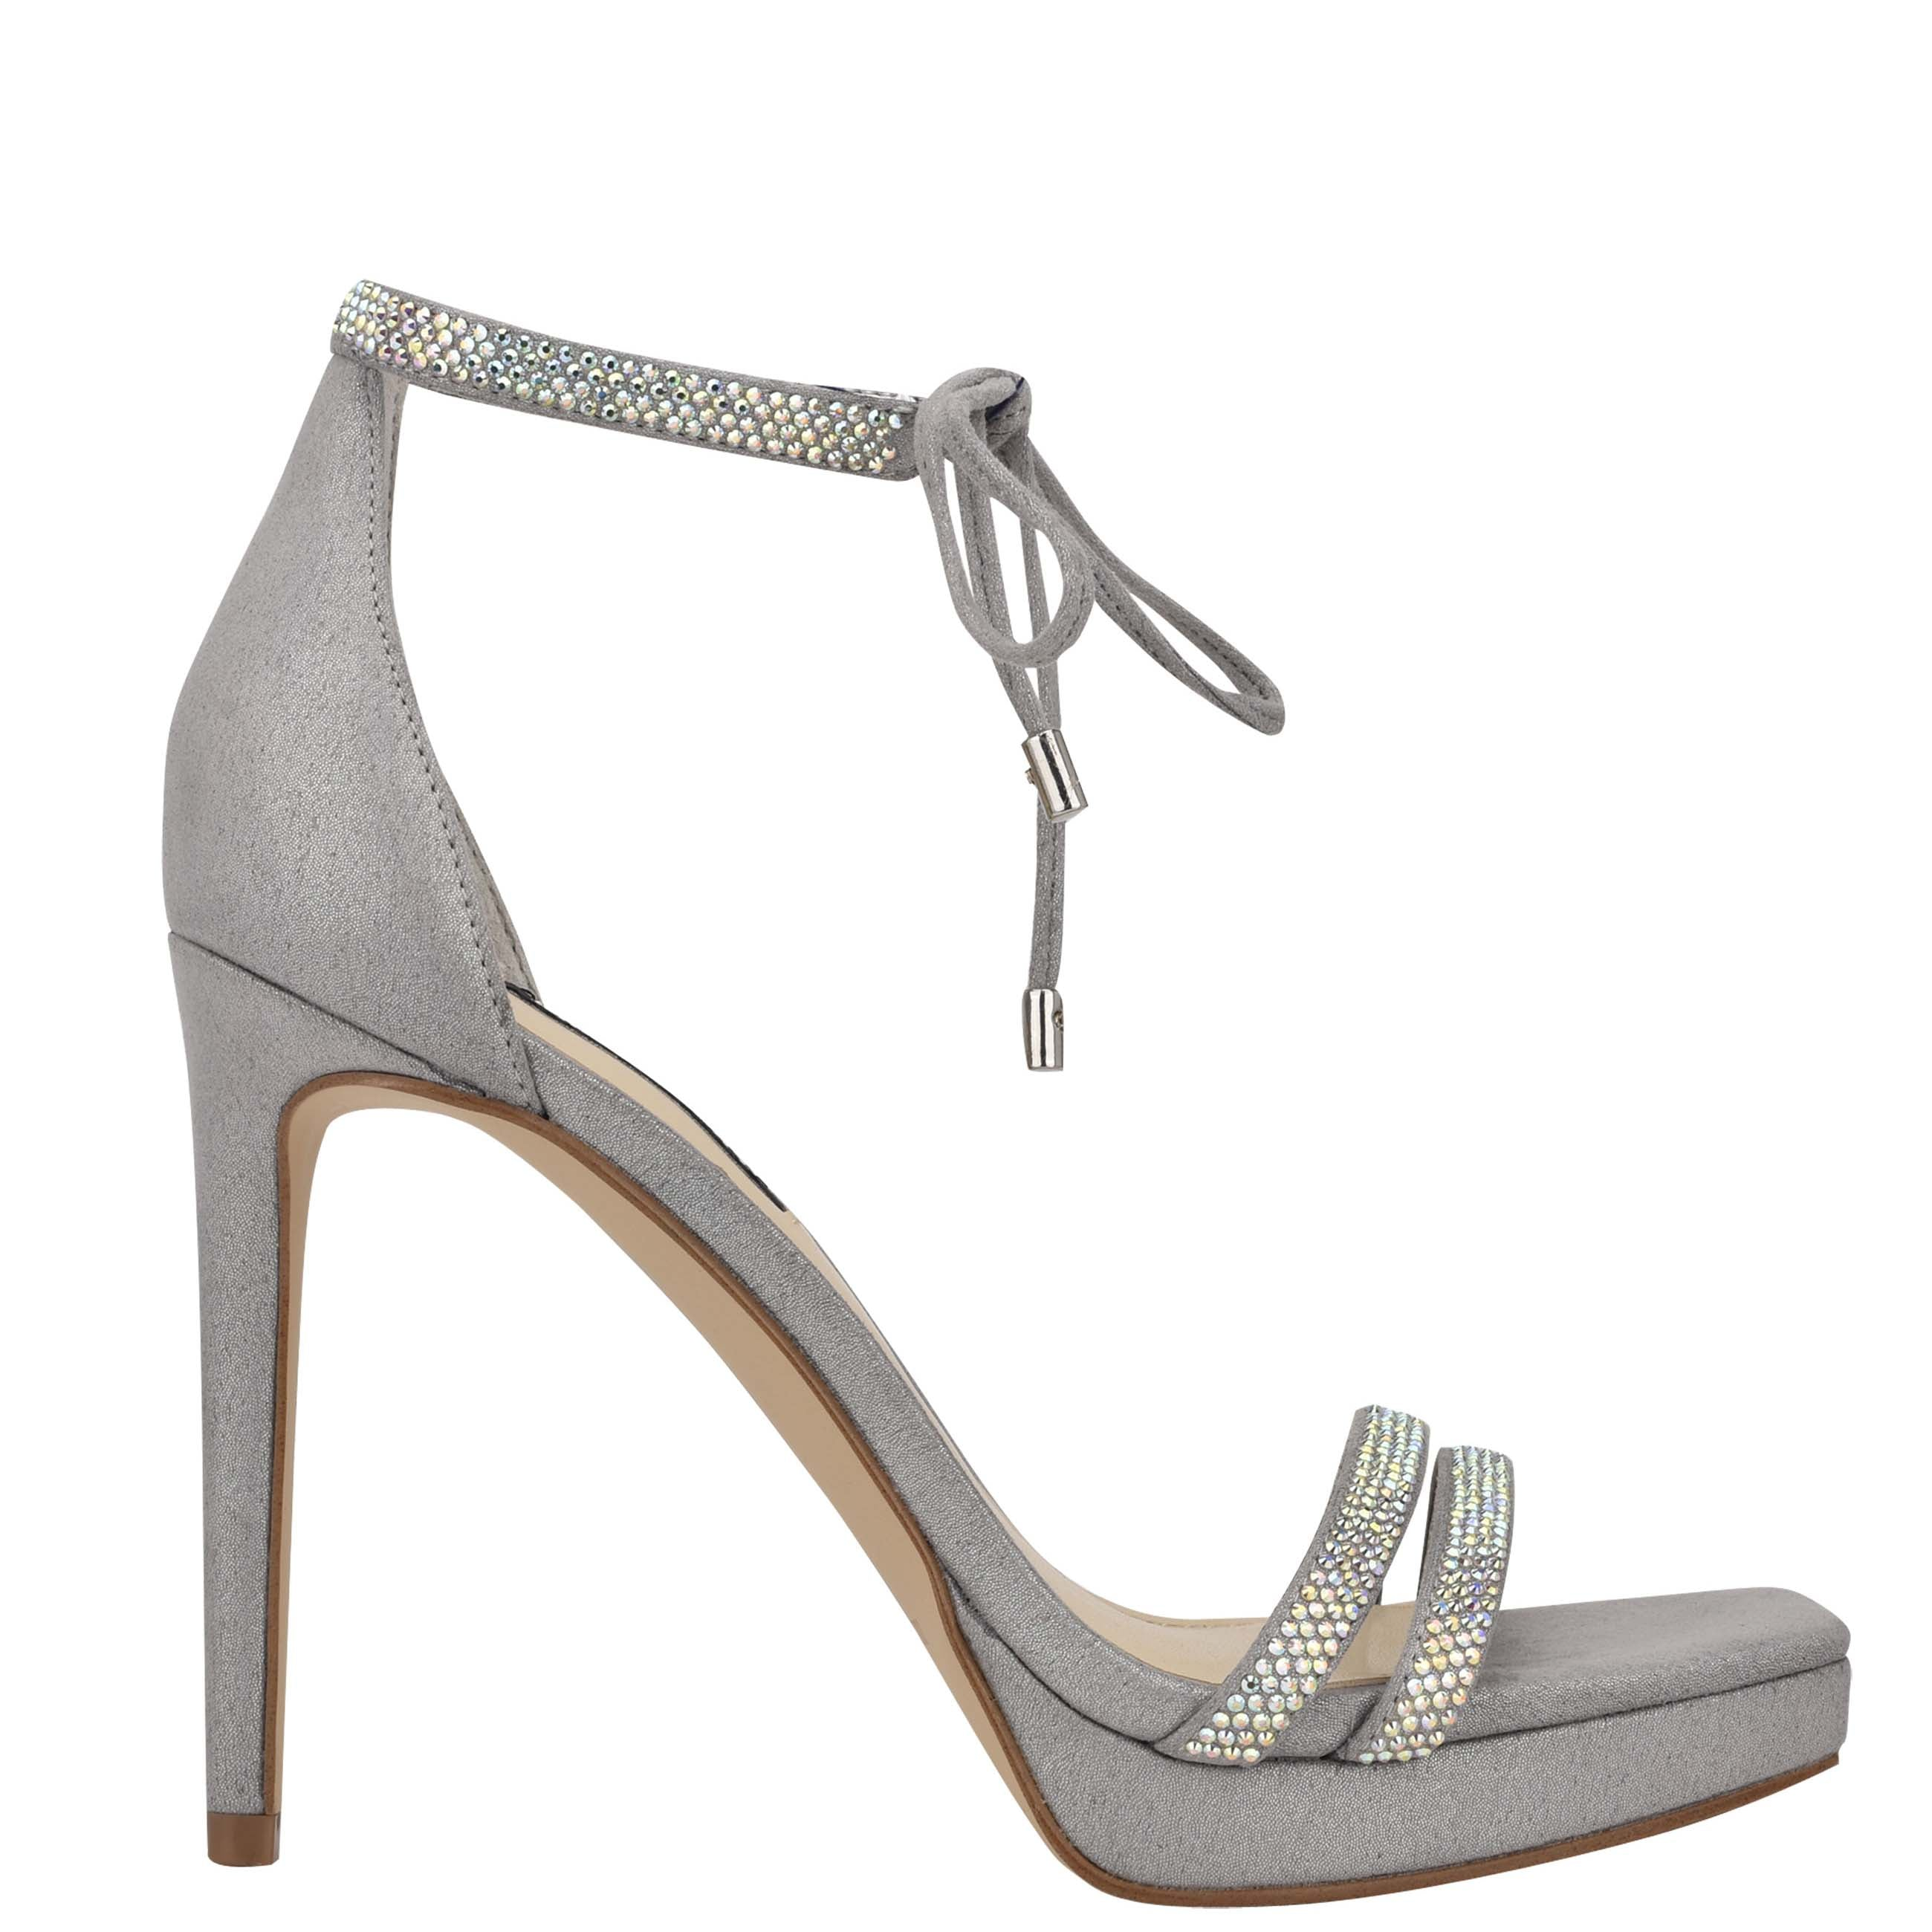 NINEWEST Zaedyn Ankle Tie Sandals